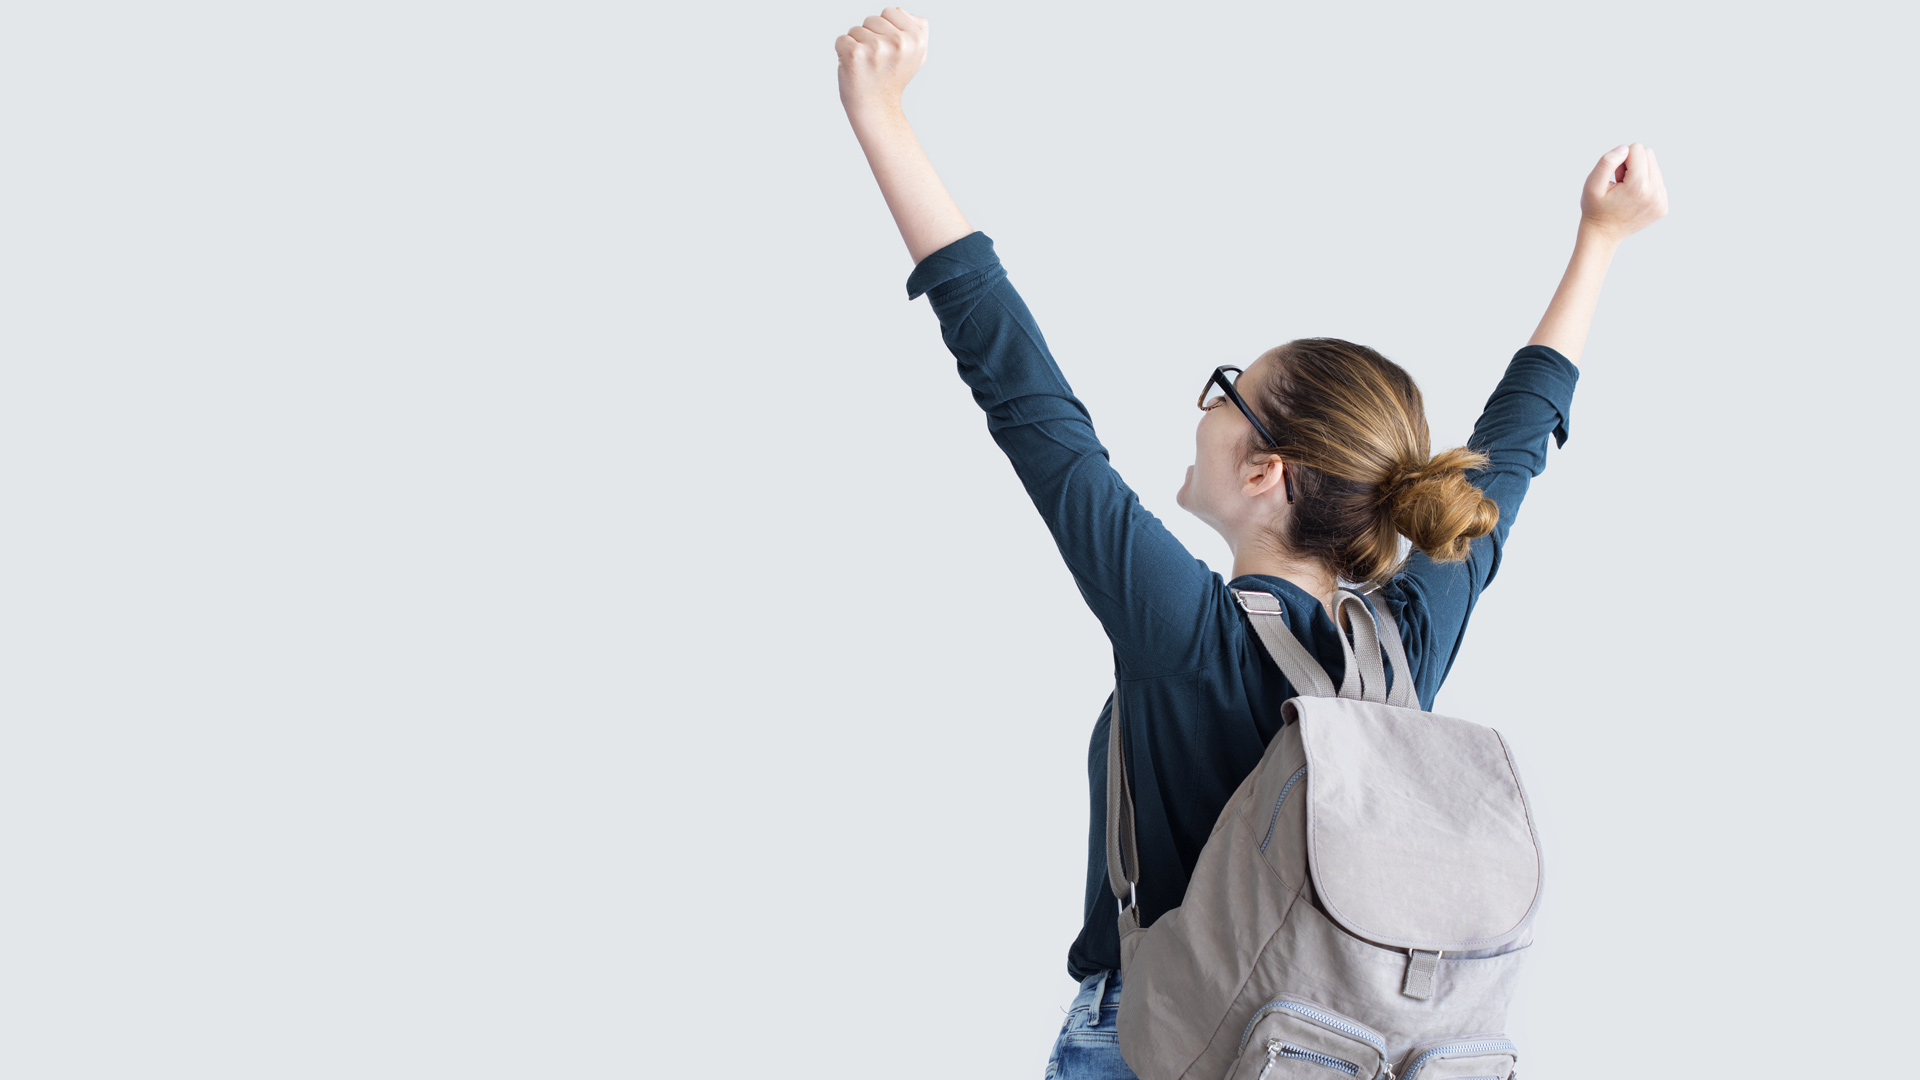 Female student wearing backpack facing away with arms raised.